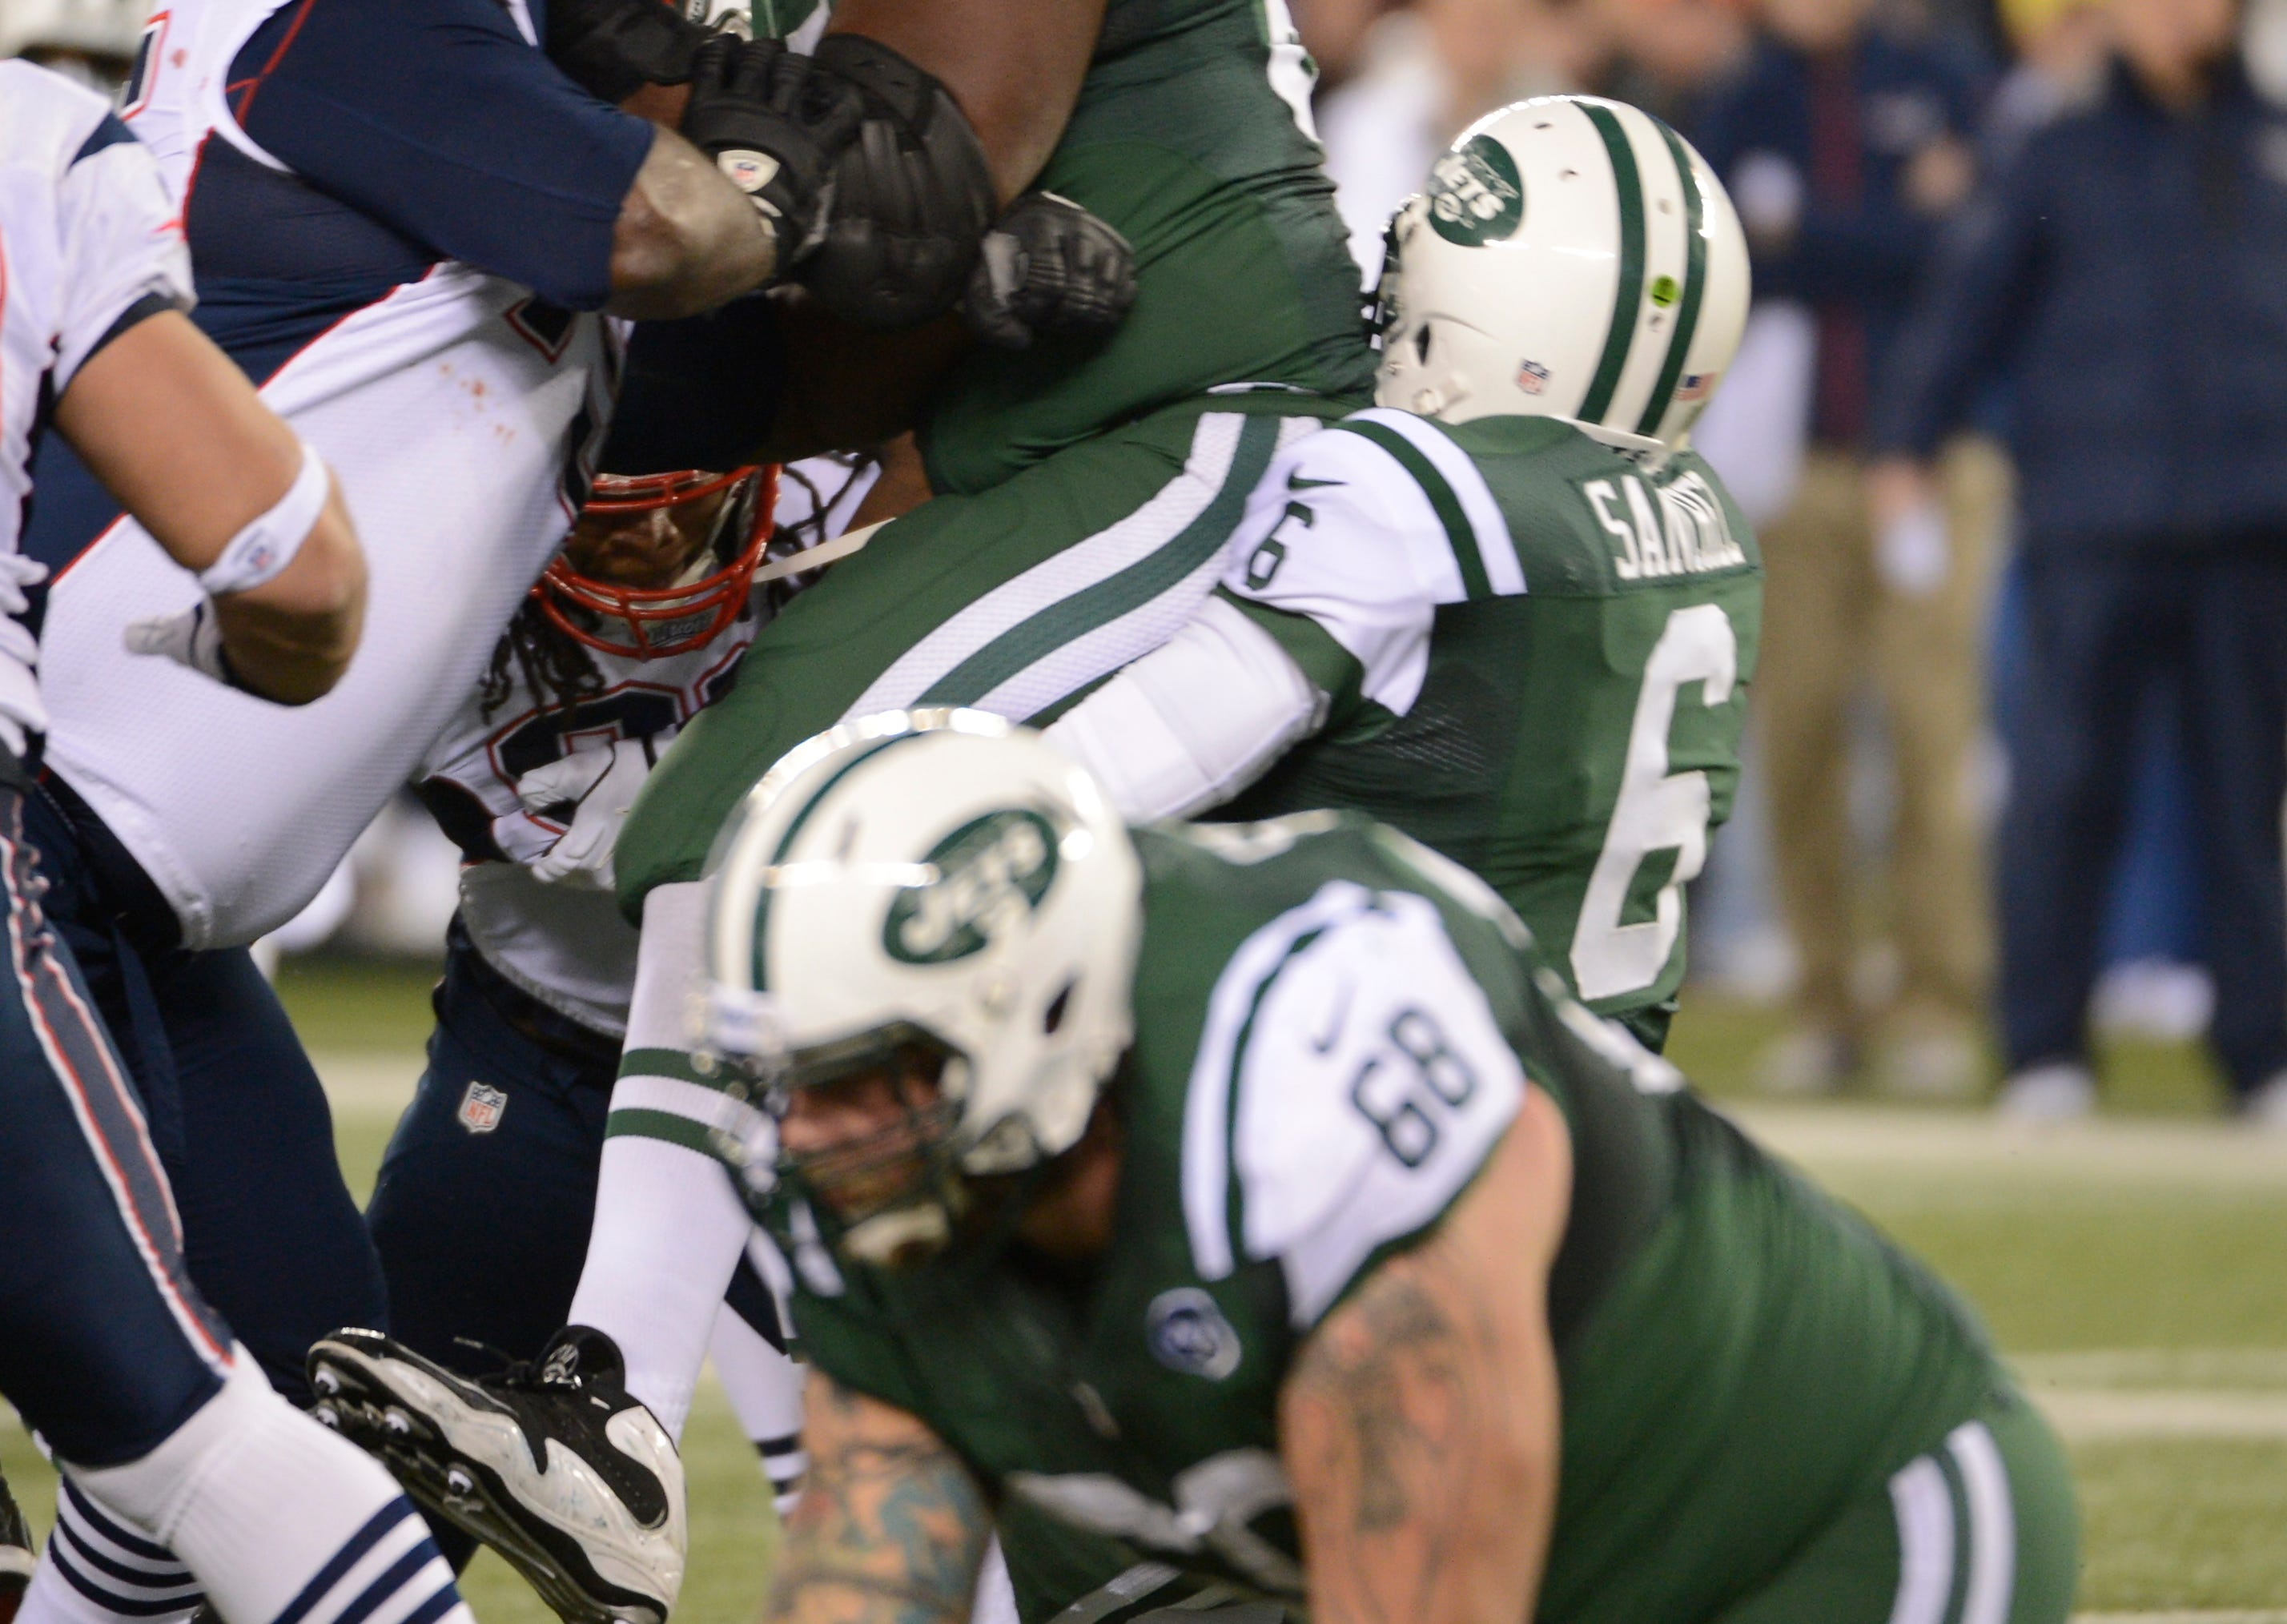 Why are the New York Jets the way that they are?